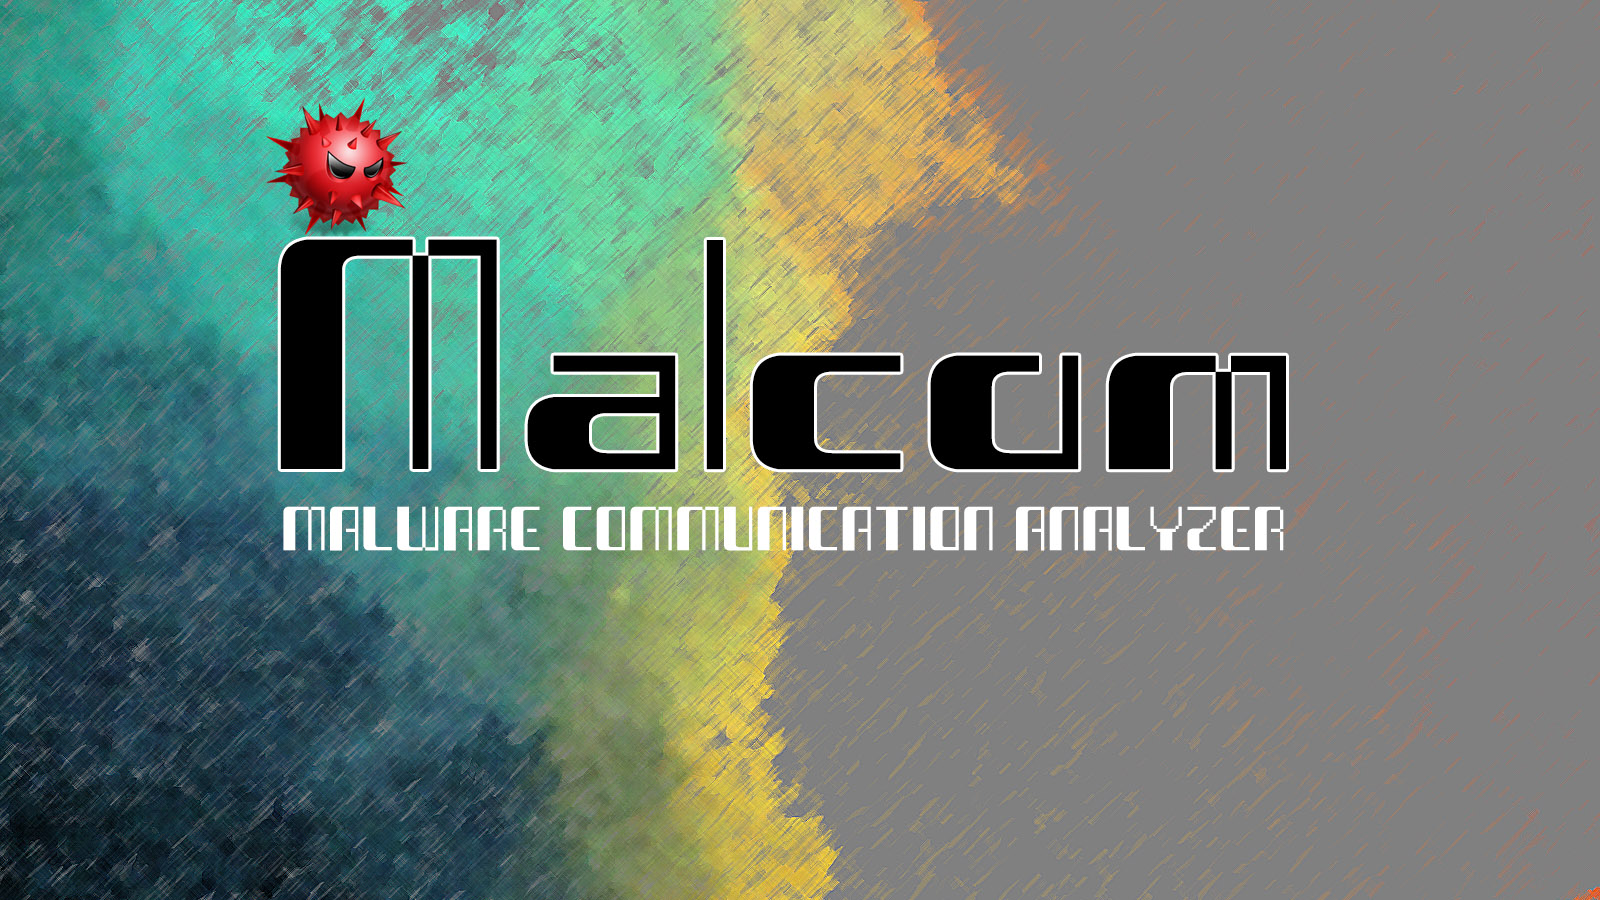 Malcom - Malware Communication Analyzer